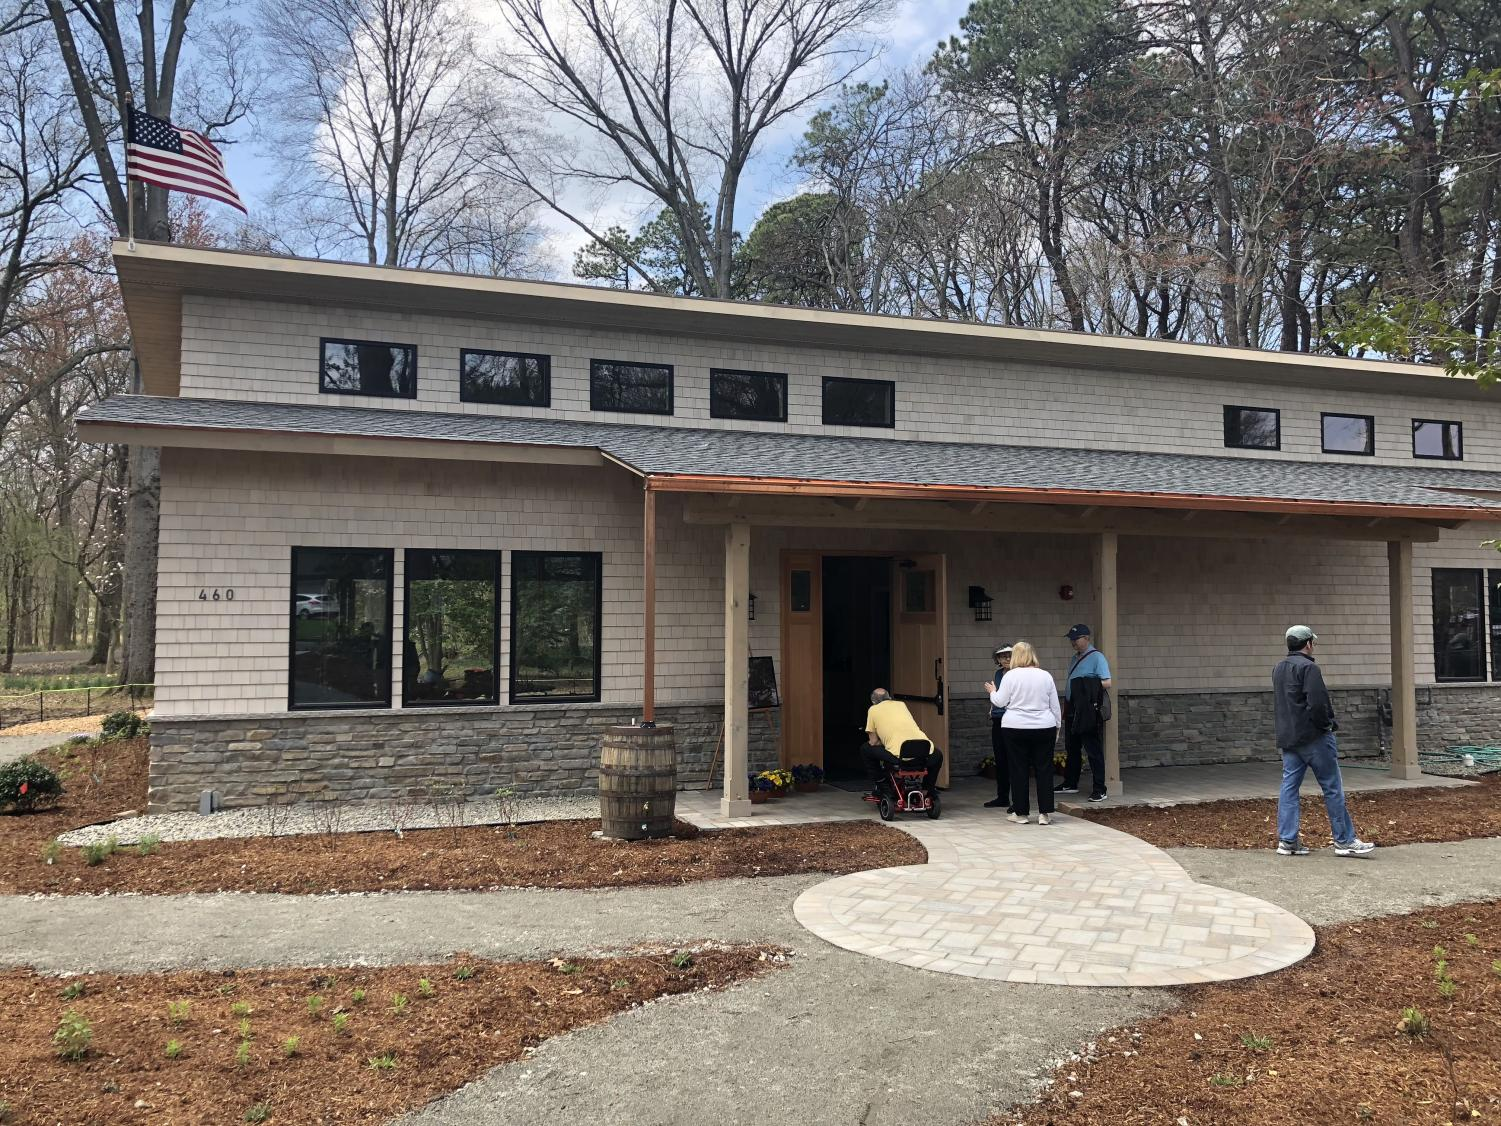 The Arboretum's new Environmental Education Center opens on Arbor Day after being in construction since September of 2017.